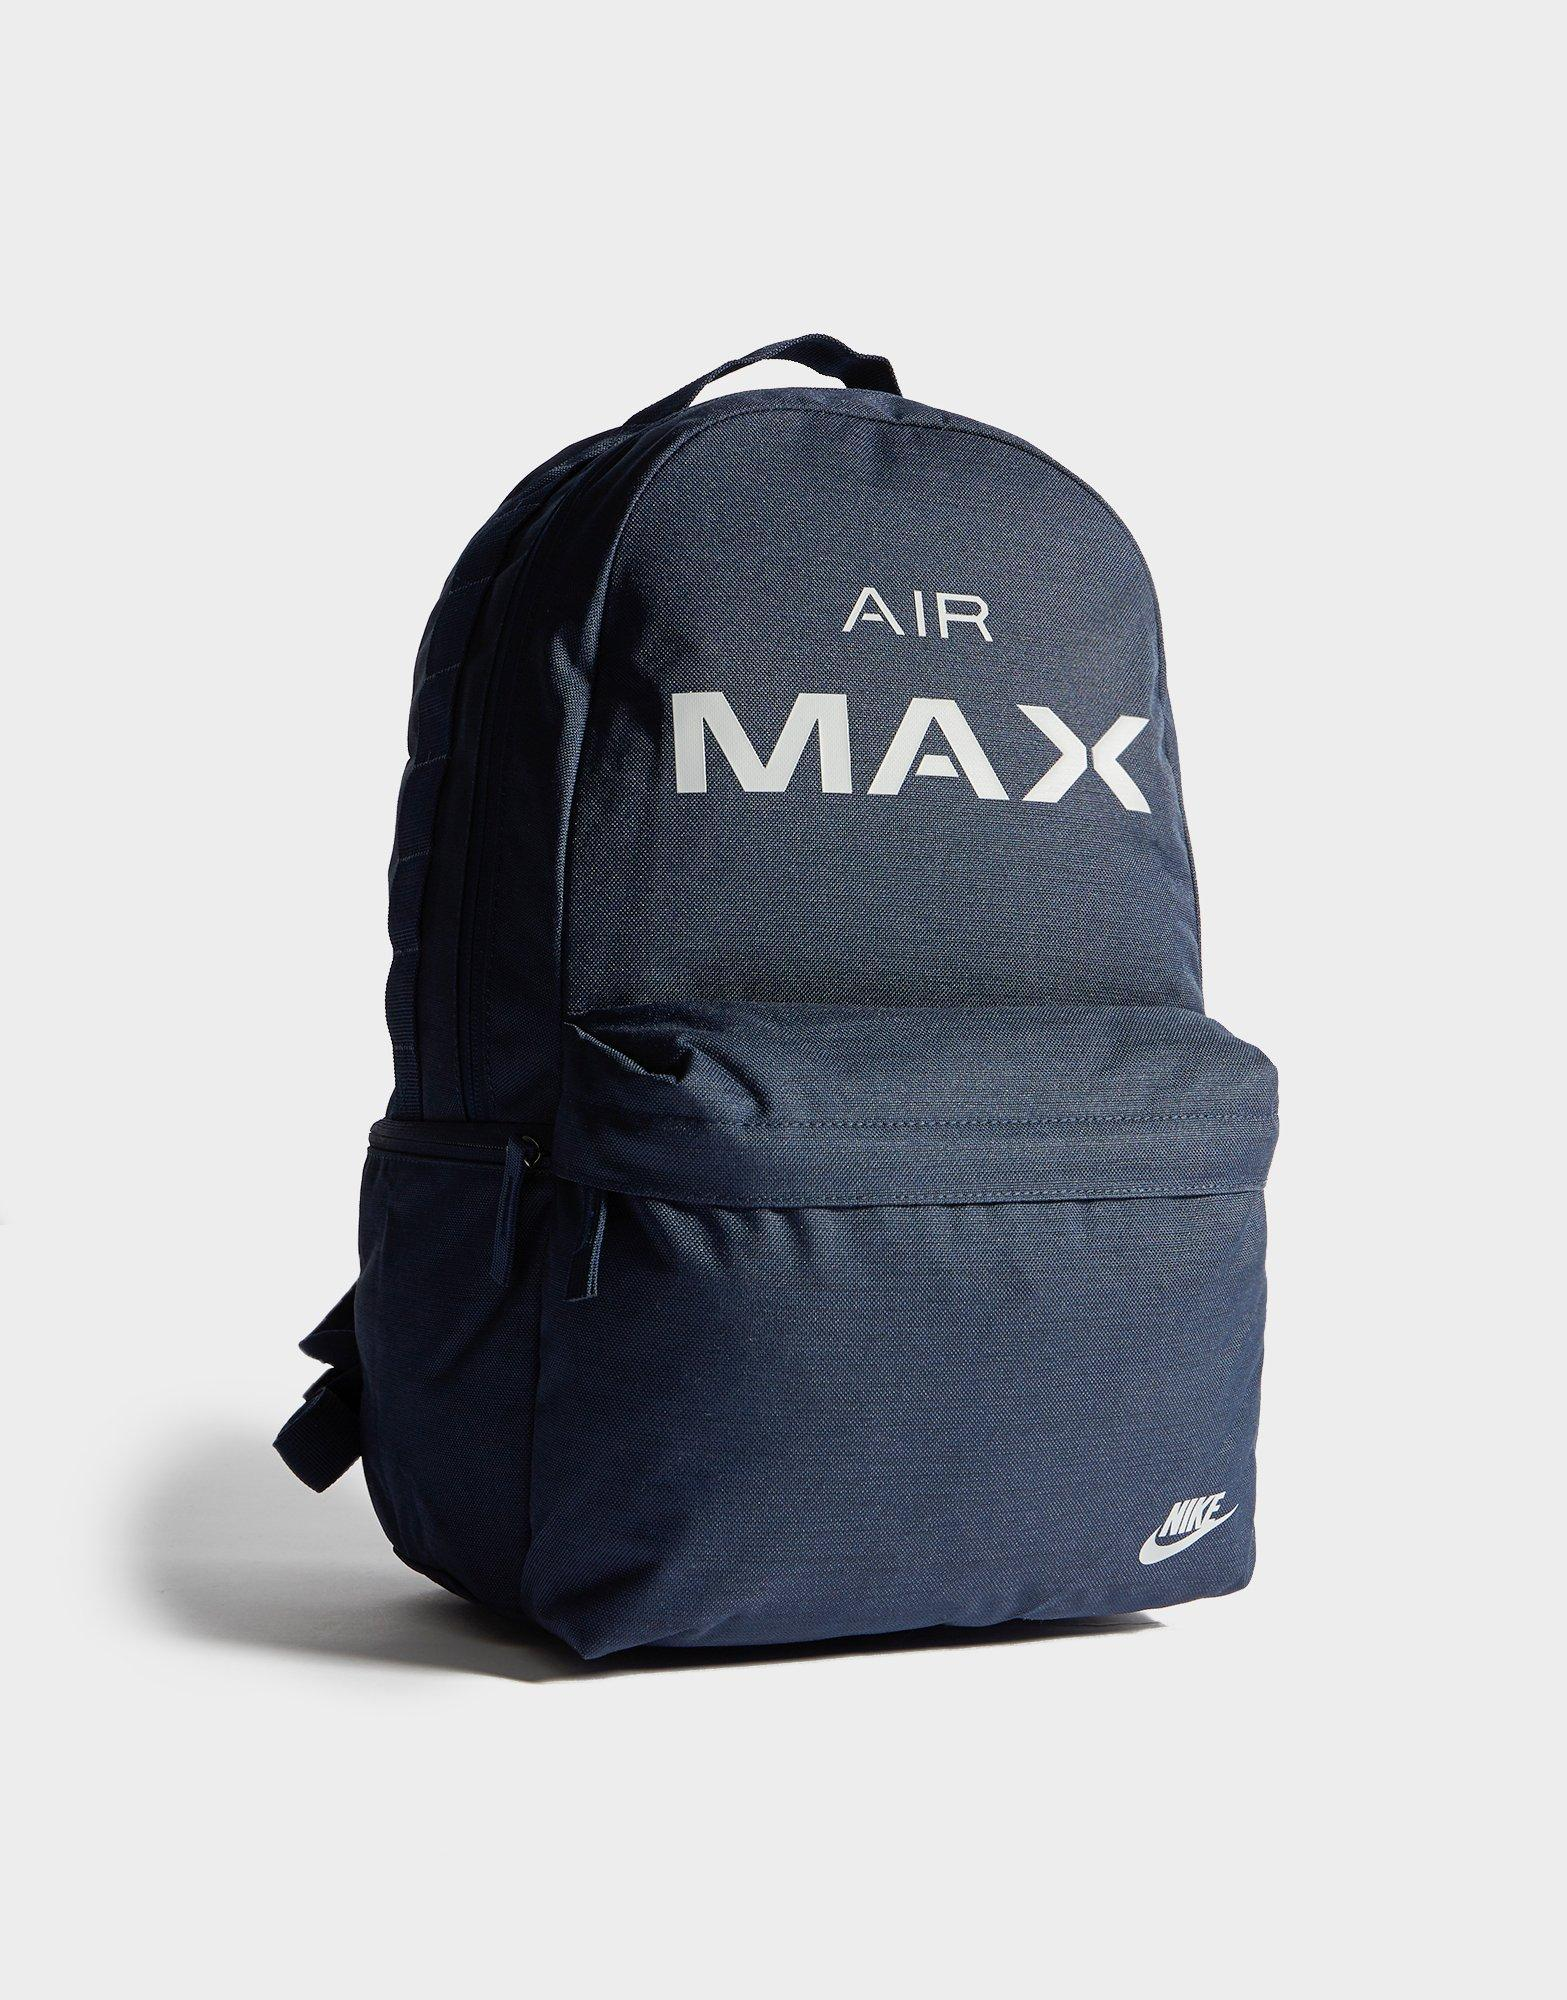 bd692747ff78 Nike Air Max Backpack in Blue for Men - Lyst